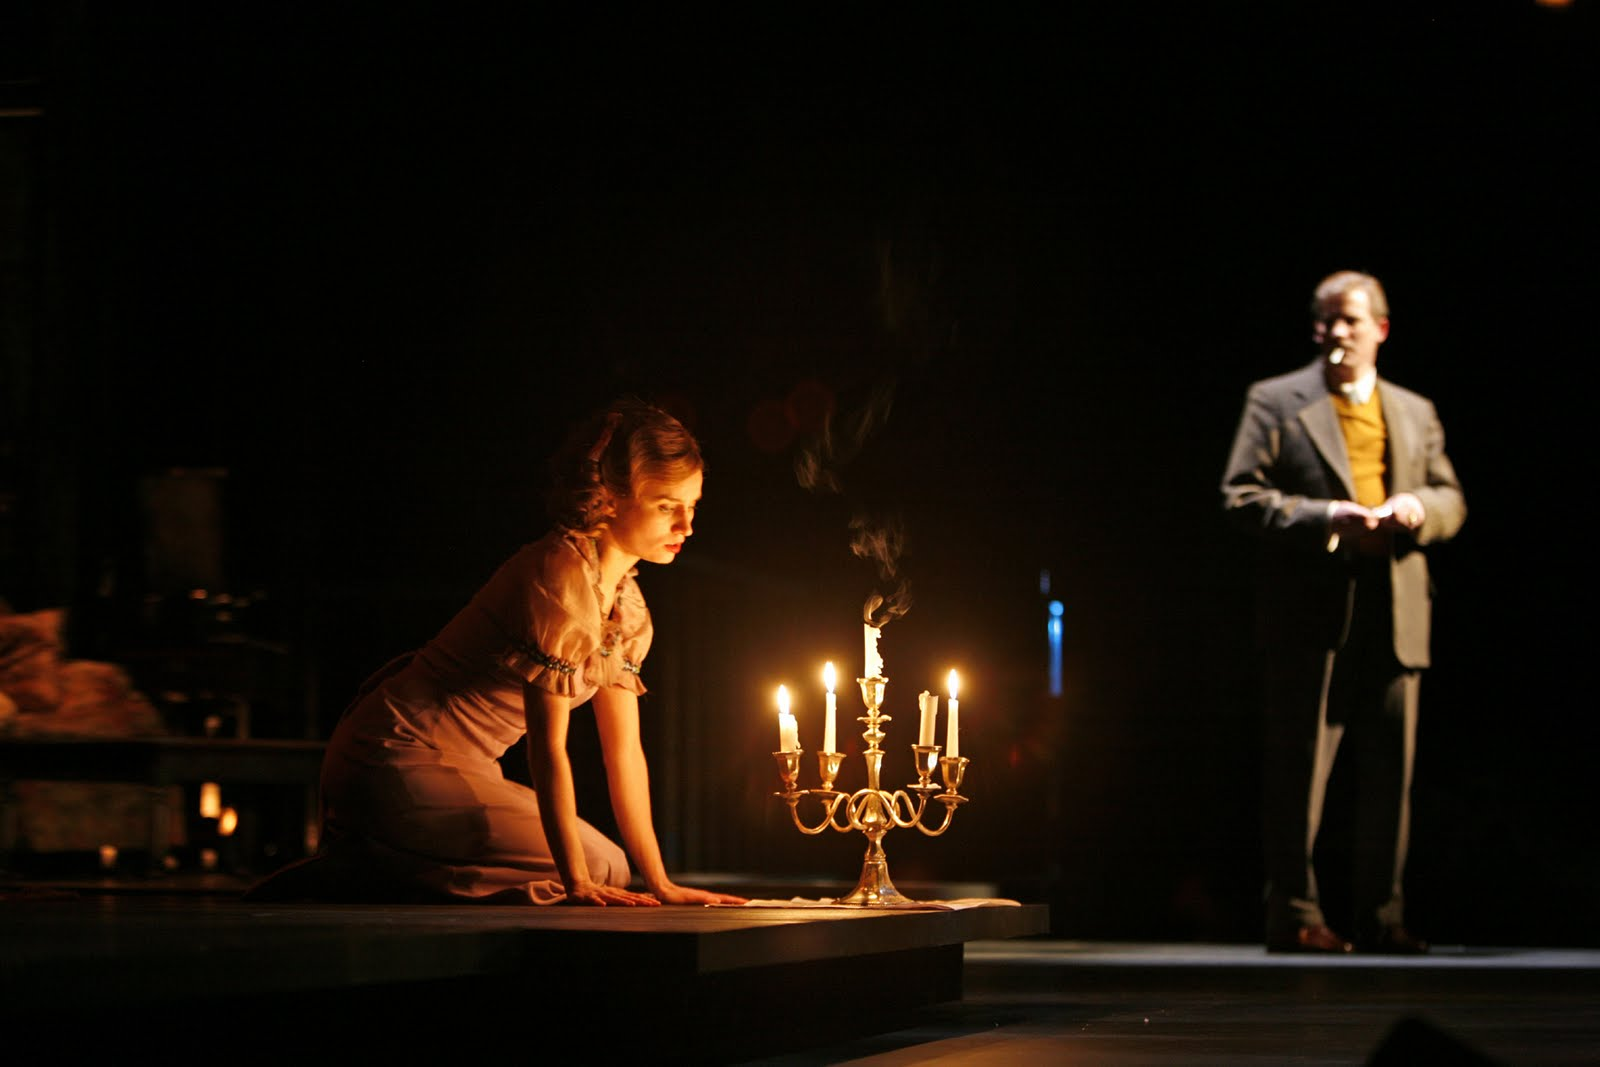 oh laura the glass menagerie - tennessee williams, the glass menagerie, scene 7 laura is talking to jim, but it's an ironic reference to laura (and to her whole family) they are all fragile, and will break apart they are all fragile, and will break apart.